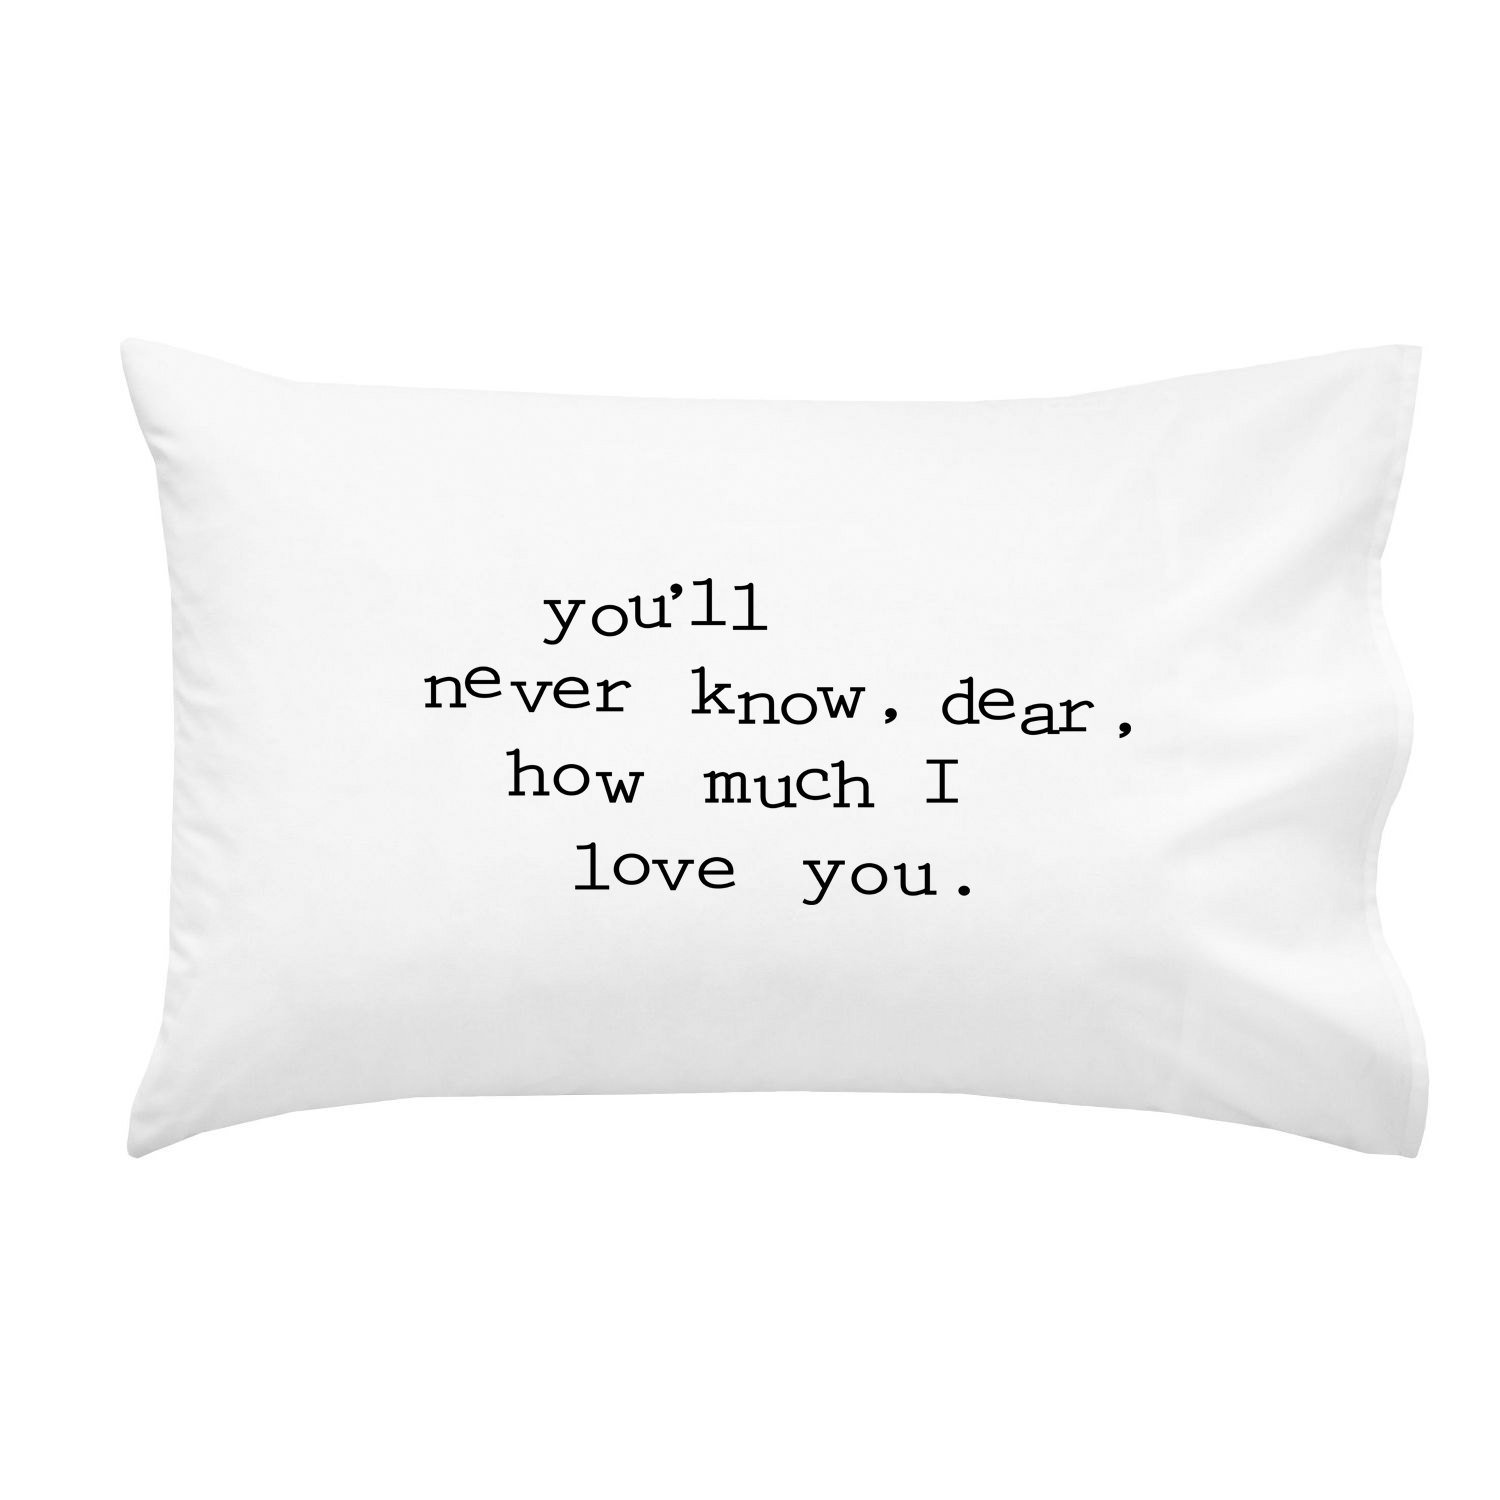 Oh, Susannah You'll Never Know, Dear, How Much I Love You. Black Font You are My Sunshine Pillowcase (One 20x30 Inch Standard/Queen Size Pillow Case) Kids Pillowcase Missing You Gifts